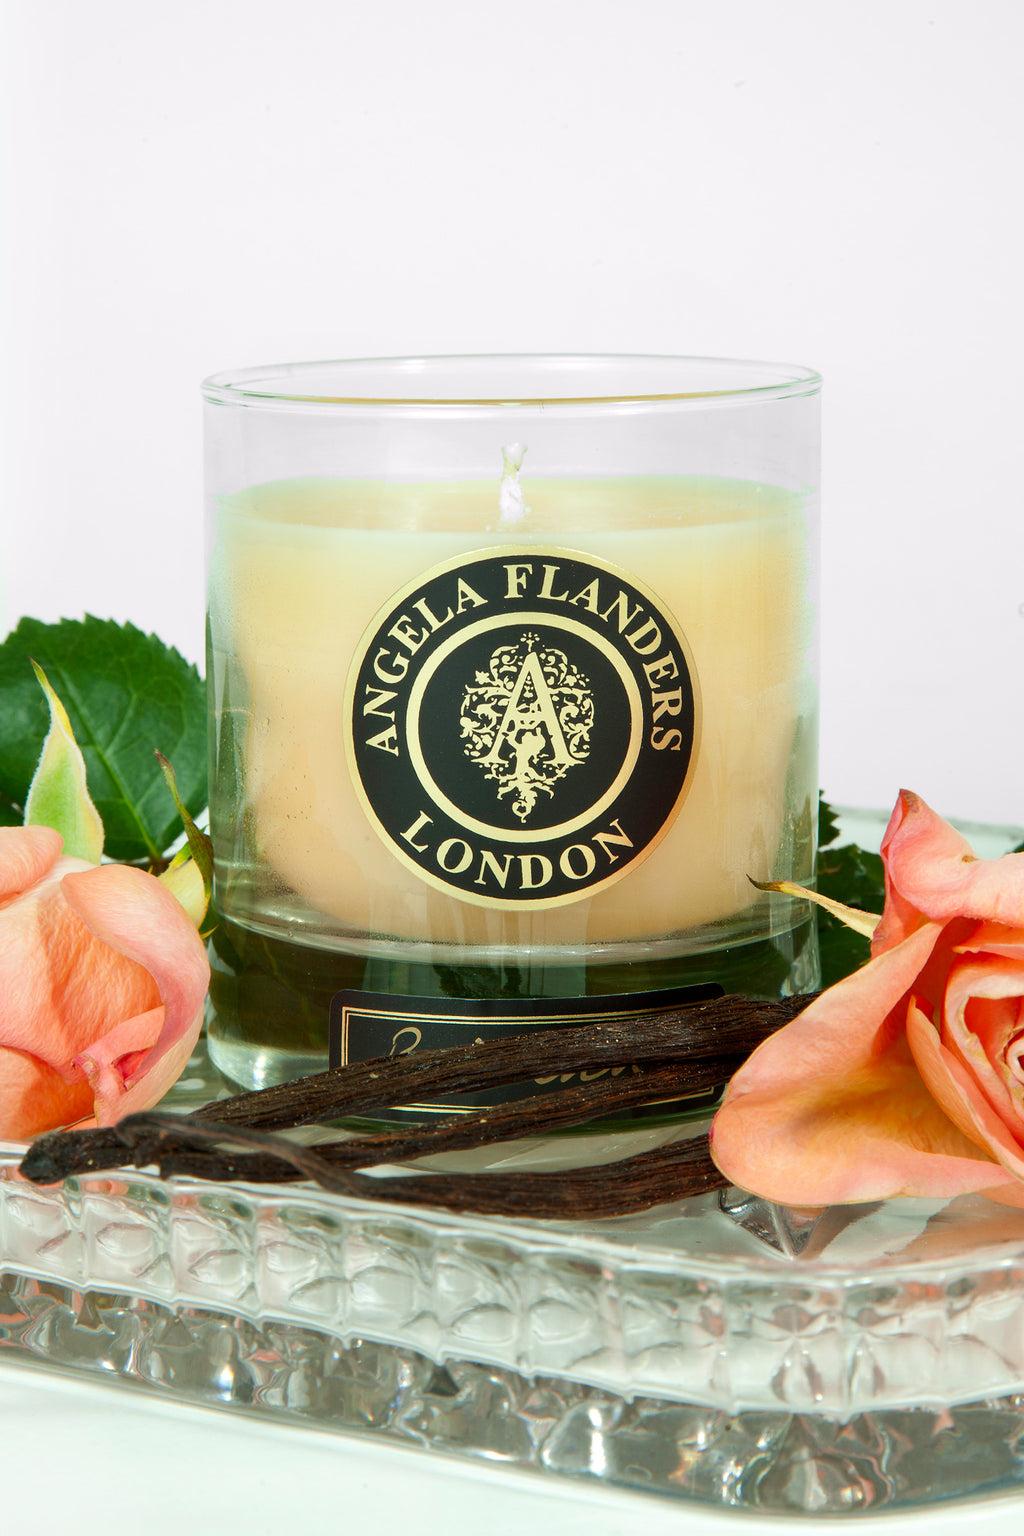 Angela Flanders Parisienne Perfumed Candle